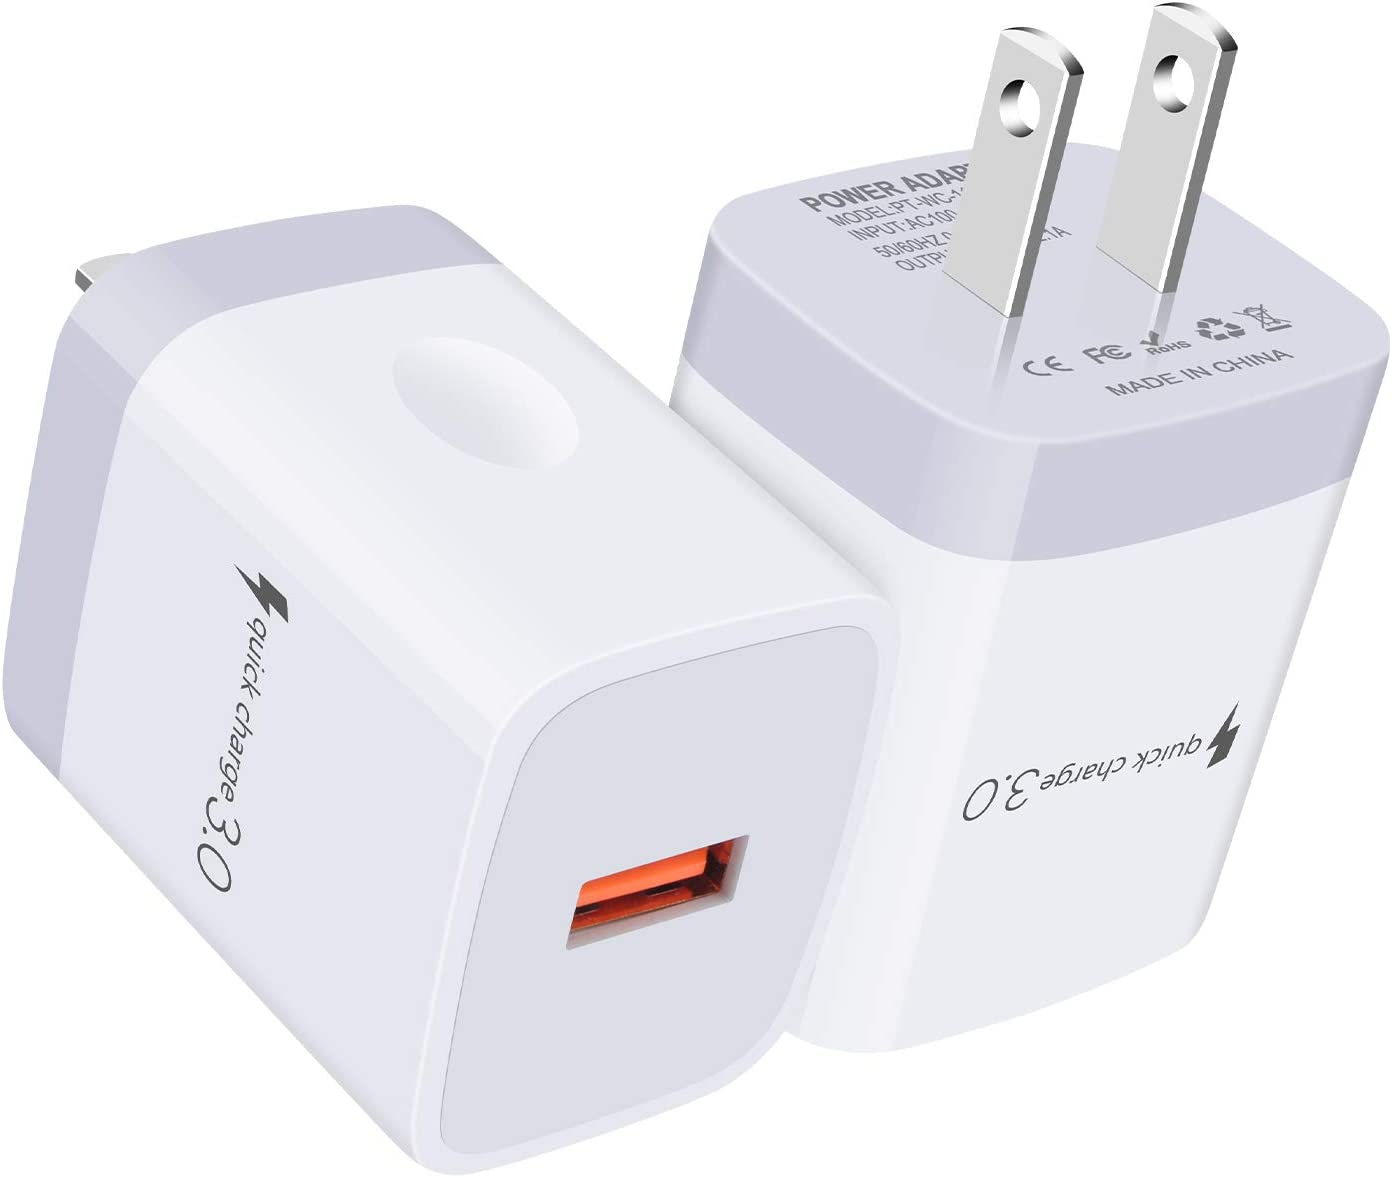 2Pack Quick Charge 3.0 Fast Charging Block Adaptive AC Adapter Wall Charger Plug for iPhone, Samsung Galaxy S21 Ultra S20 FE 5G S20+ Note 20 S10 Lite S10 5G S10e S9 S8 S7 A01 A10E A20 A21 A50 A51 A71